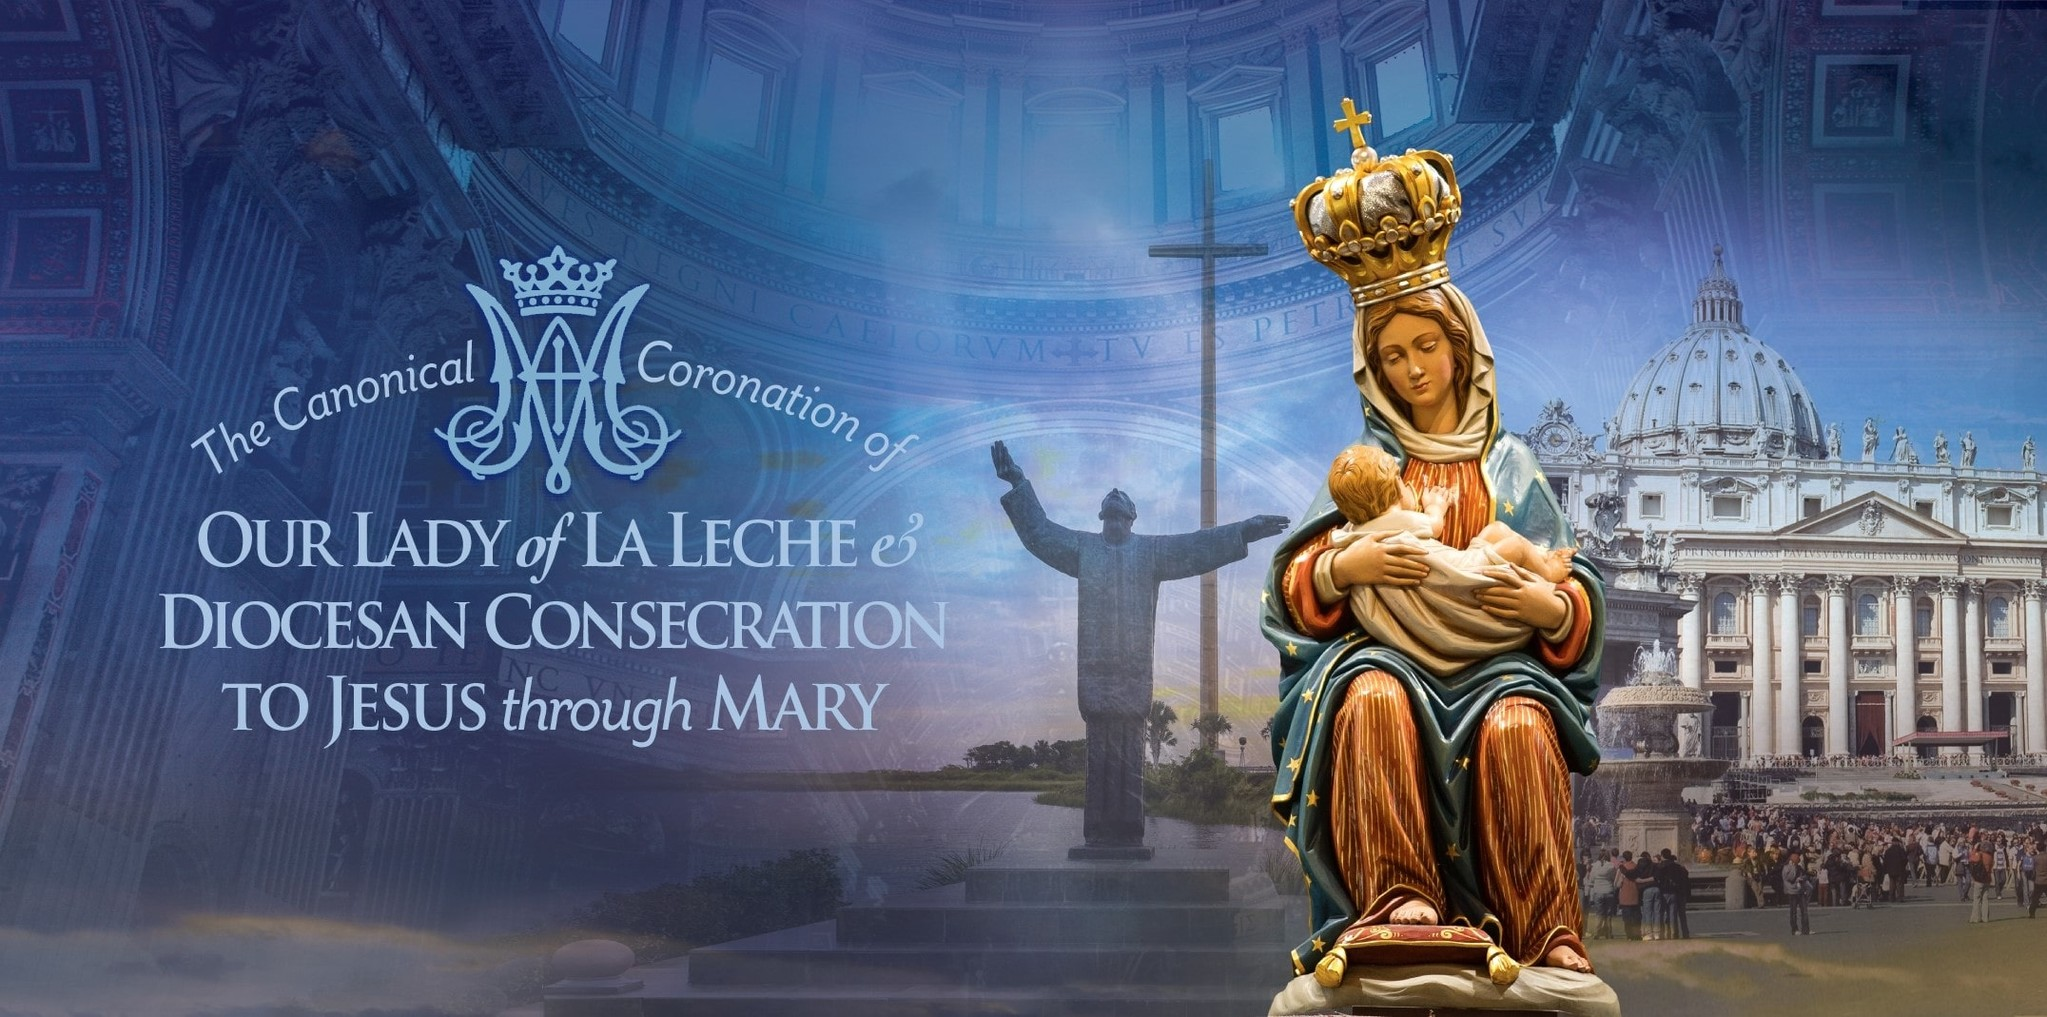 Canonical Coronation of Our Lady of La Leche and the Diocesan Consecration to Jesus through Mary